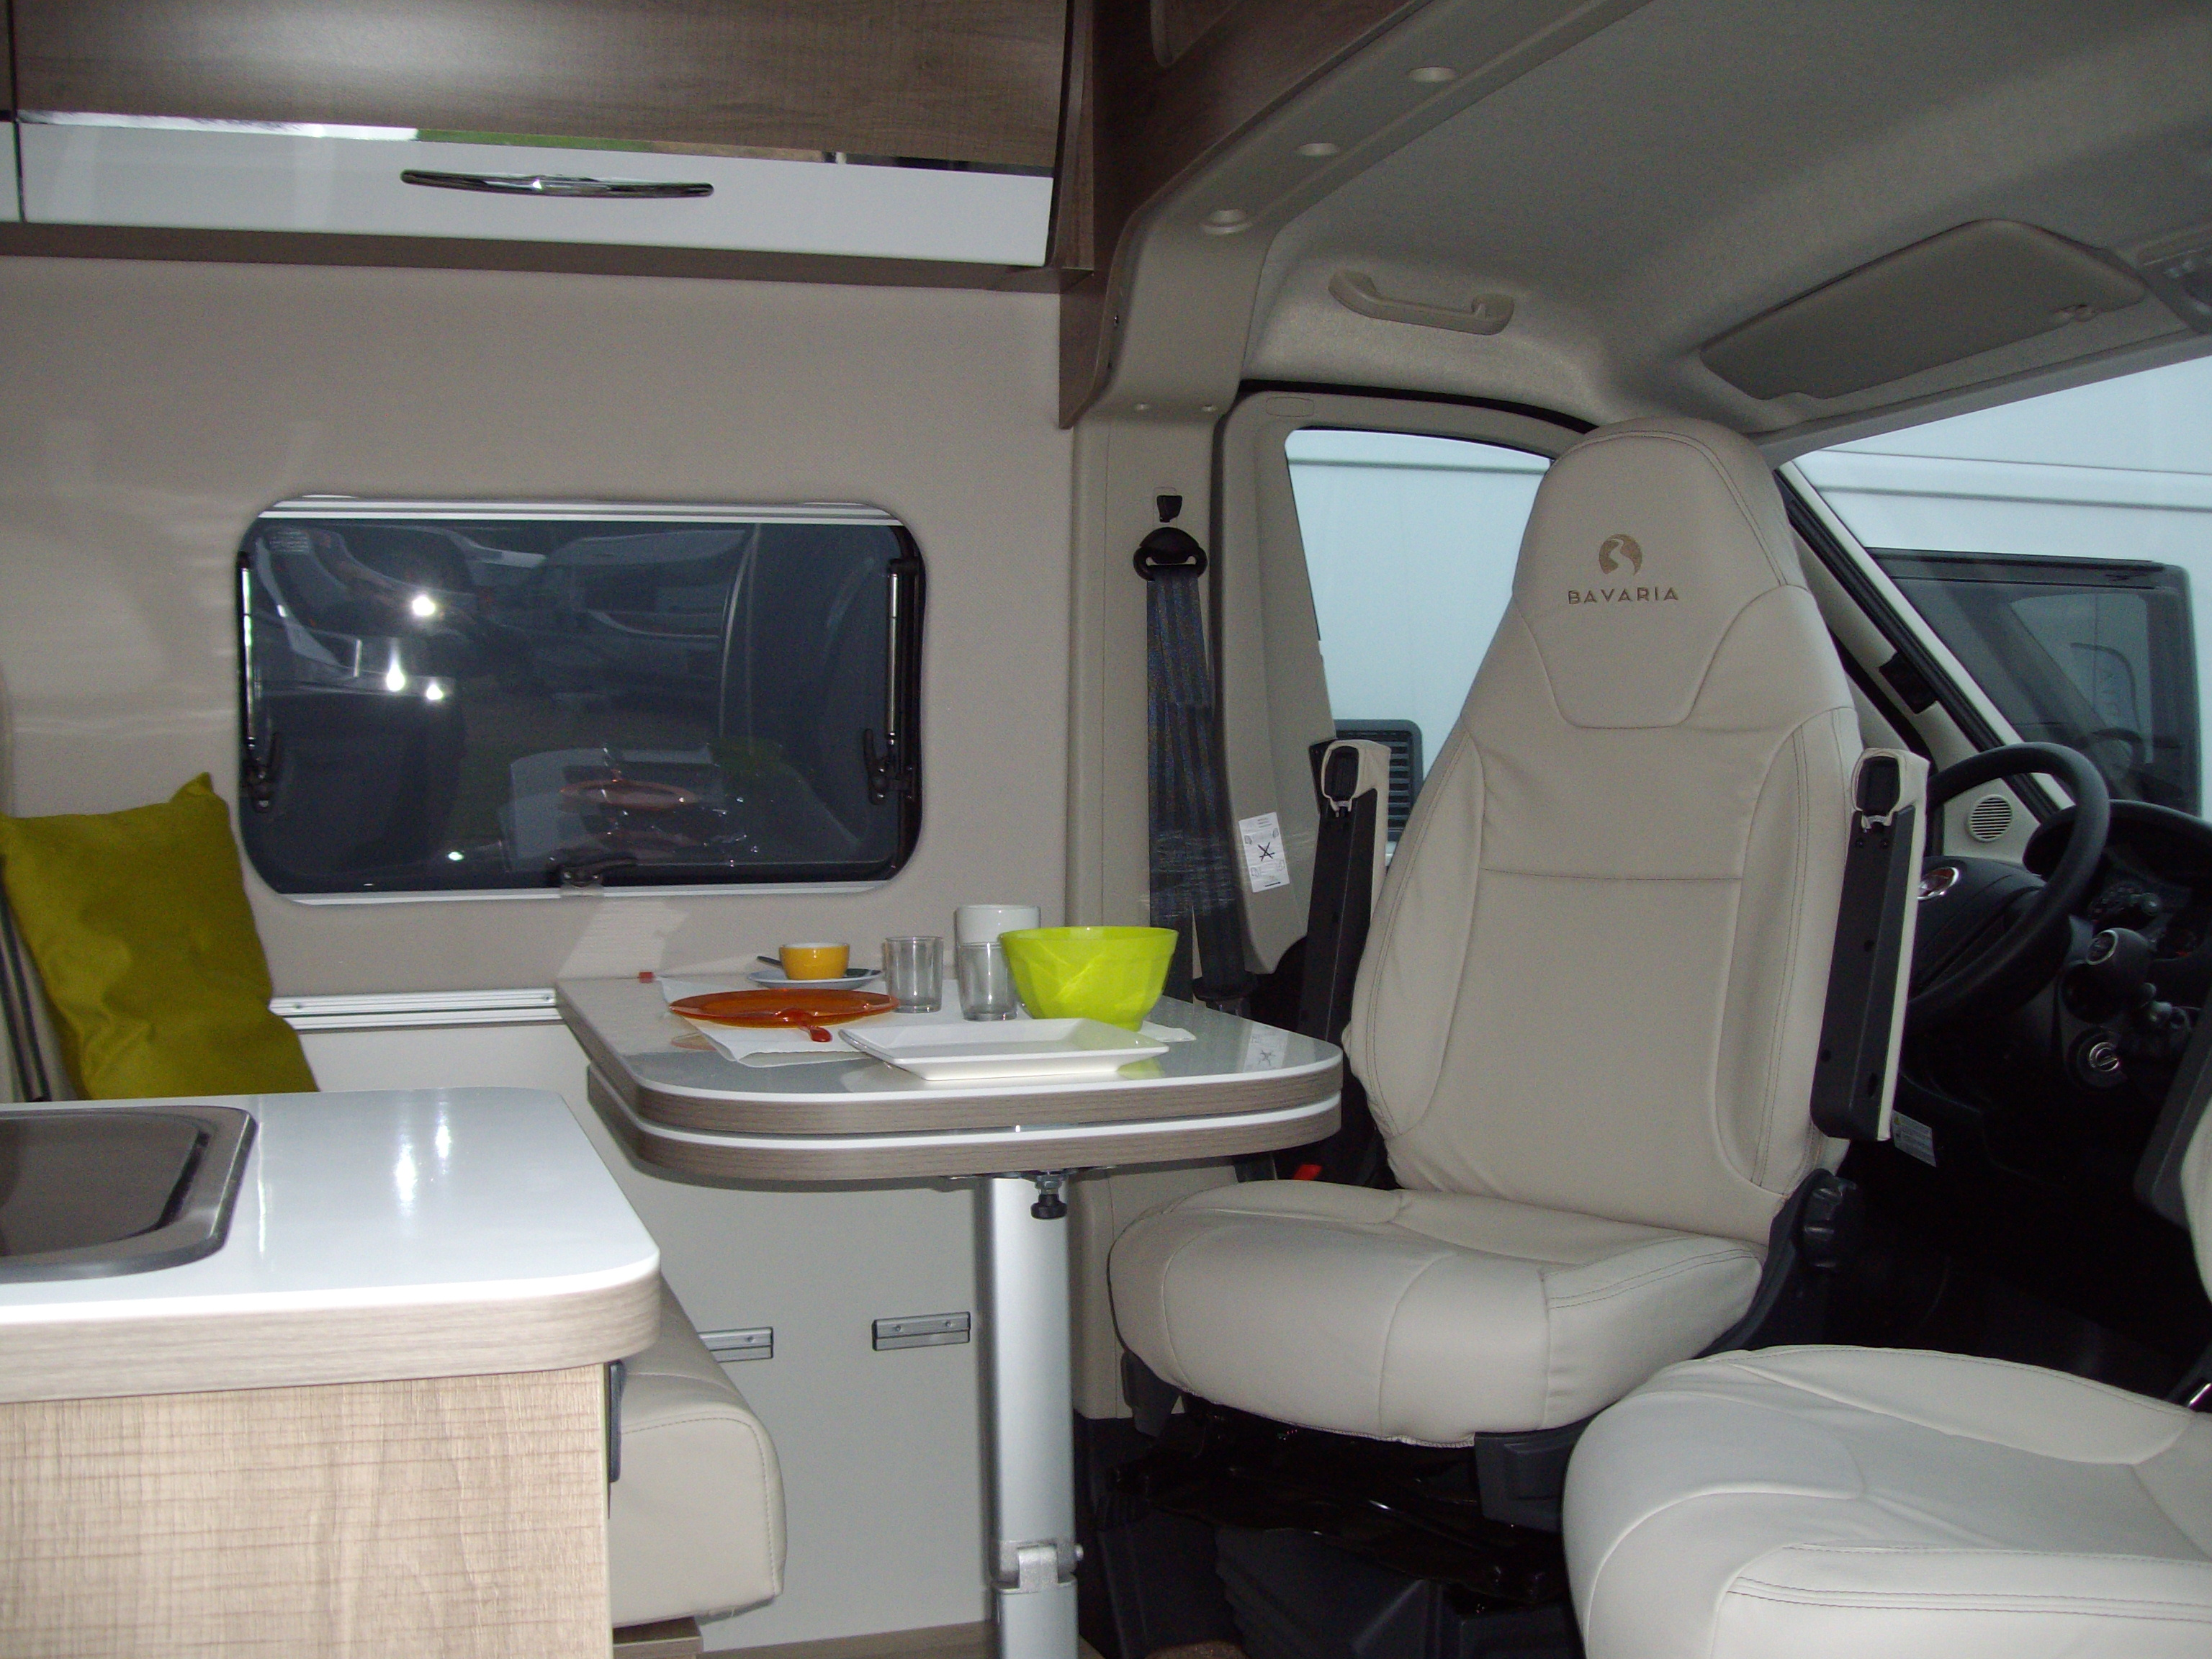 auto caravanes loisirs camping car fourgon amenage annonces occasion. Black Bedroom Furniture Sets. Home Design Ideas